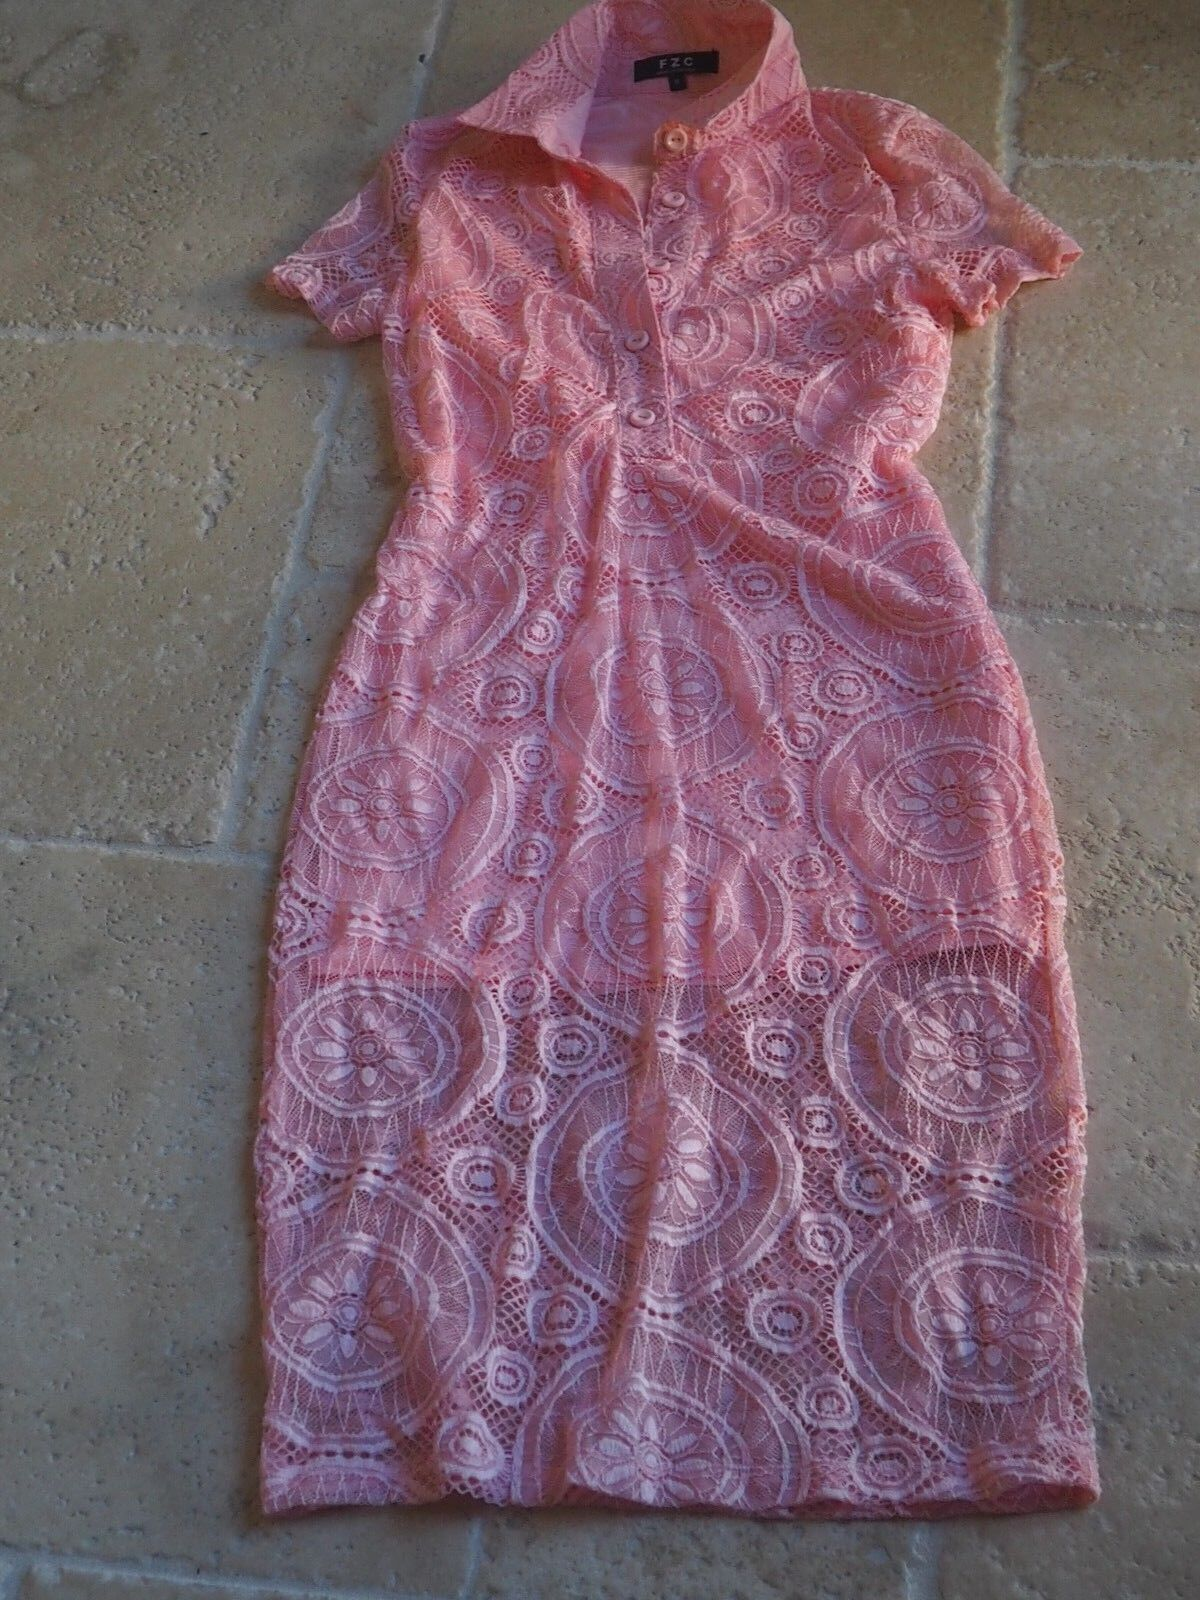 4f87c0dd9c5 DESIGNER F Z C COLORS OF THE WIND PASTEL PINK STRETCHY LACE MIDI FITTED  DRESS S